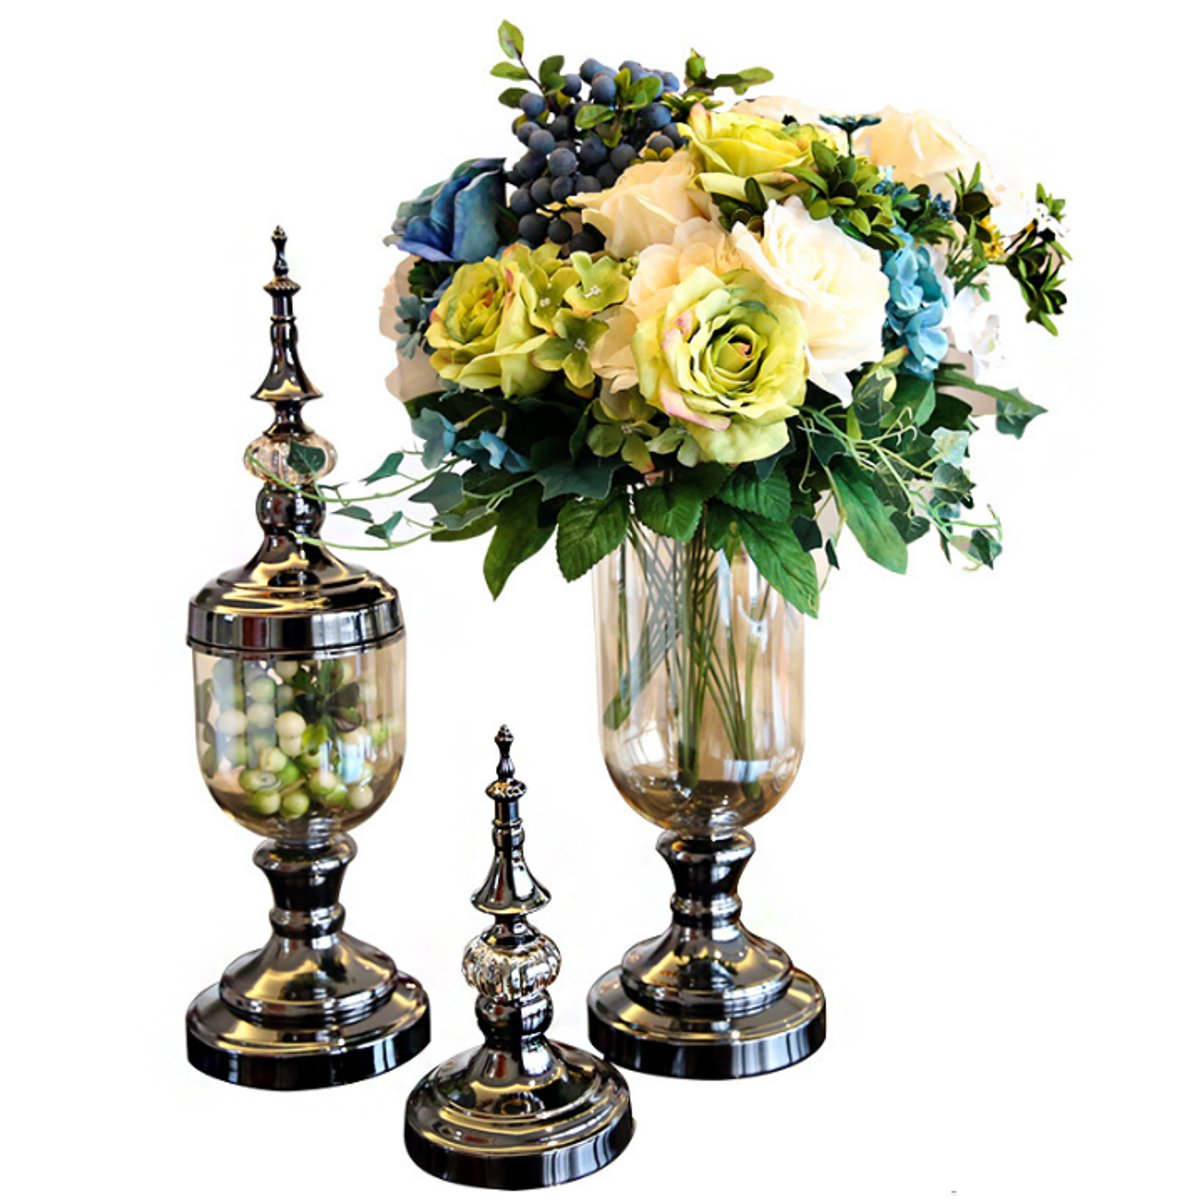 Flower Vases For Weddings: European Glass Flower Vase Floral Holder Wedding Party